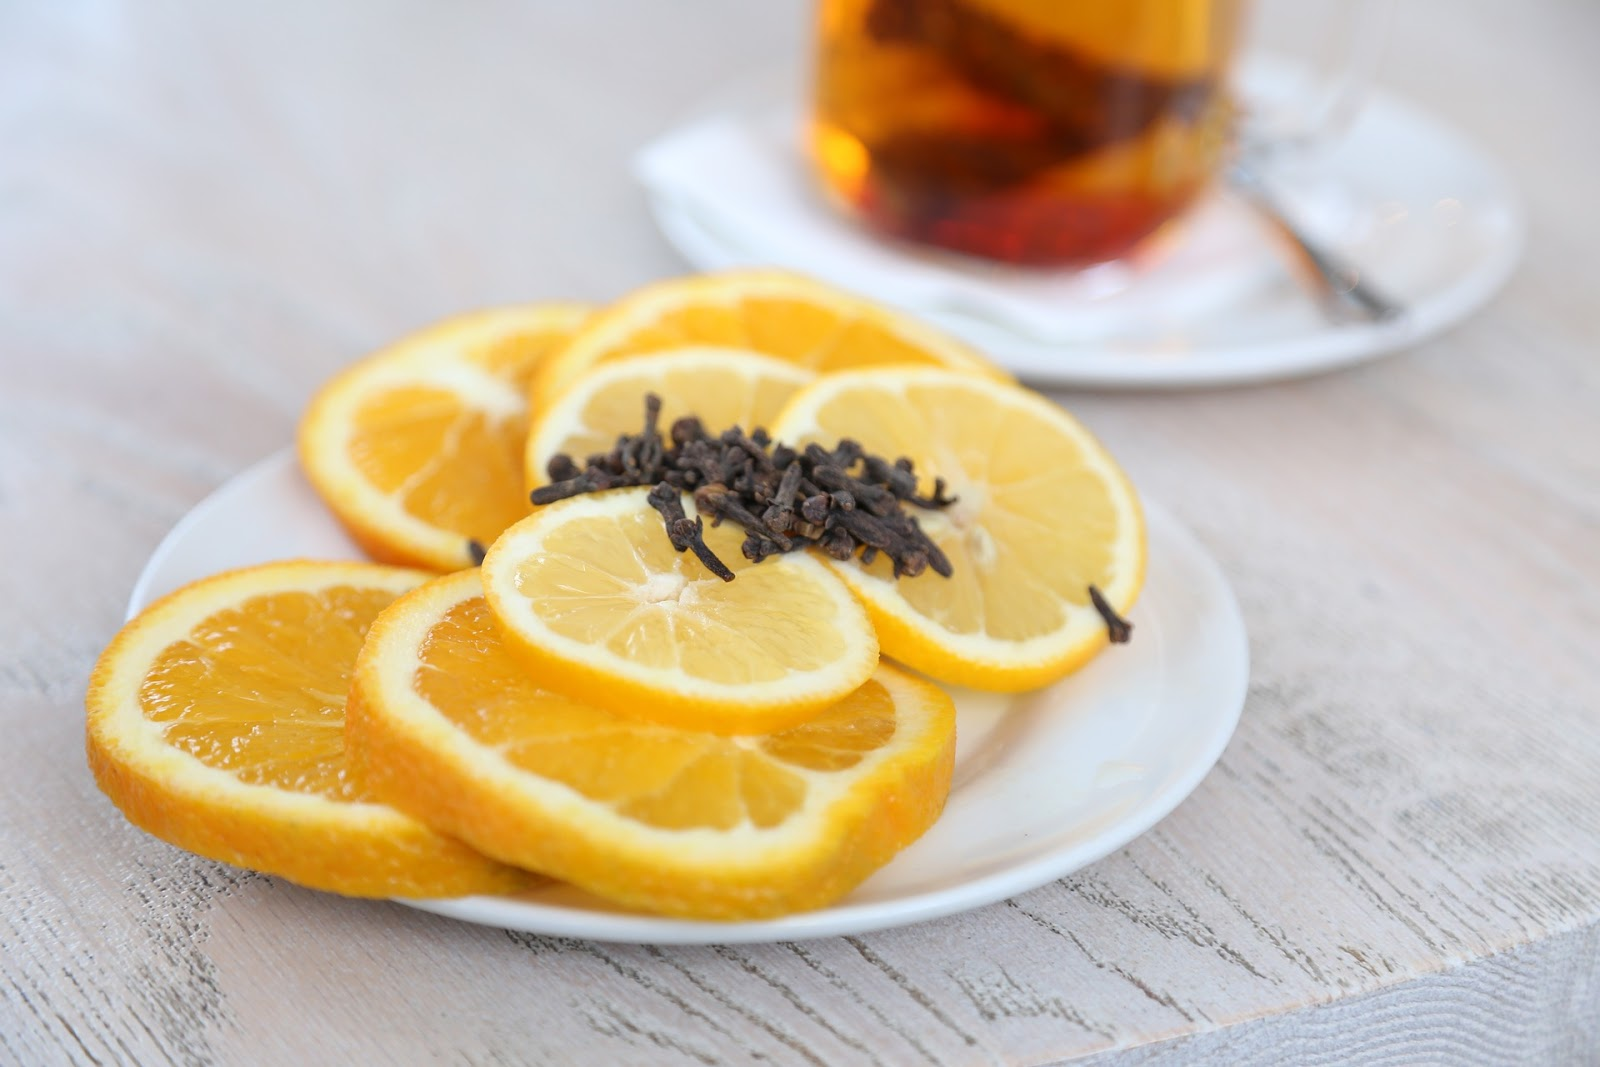 7 Teas That Change Your Mood - www.howsheknowsthat.com - mood - healthy eating - lifestyle - teas - top